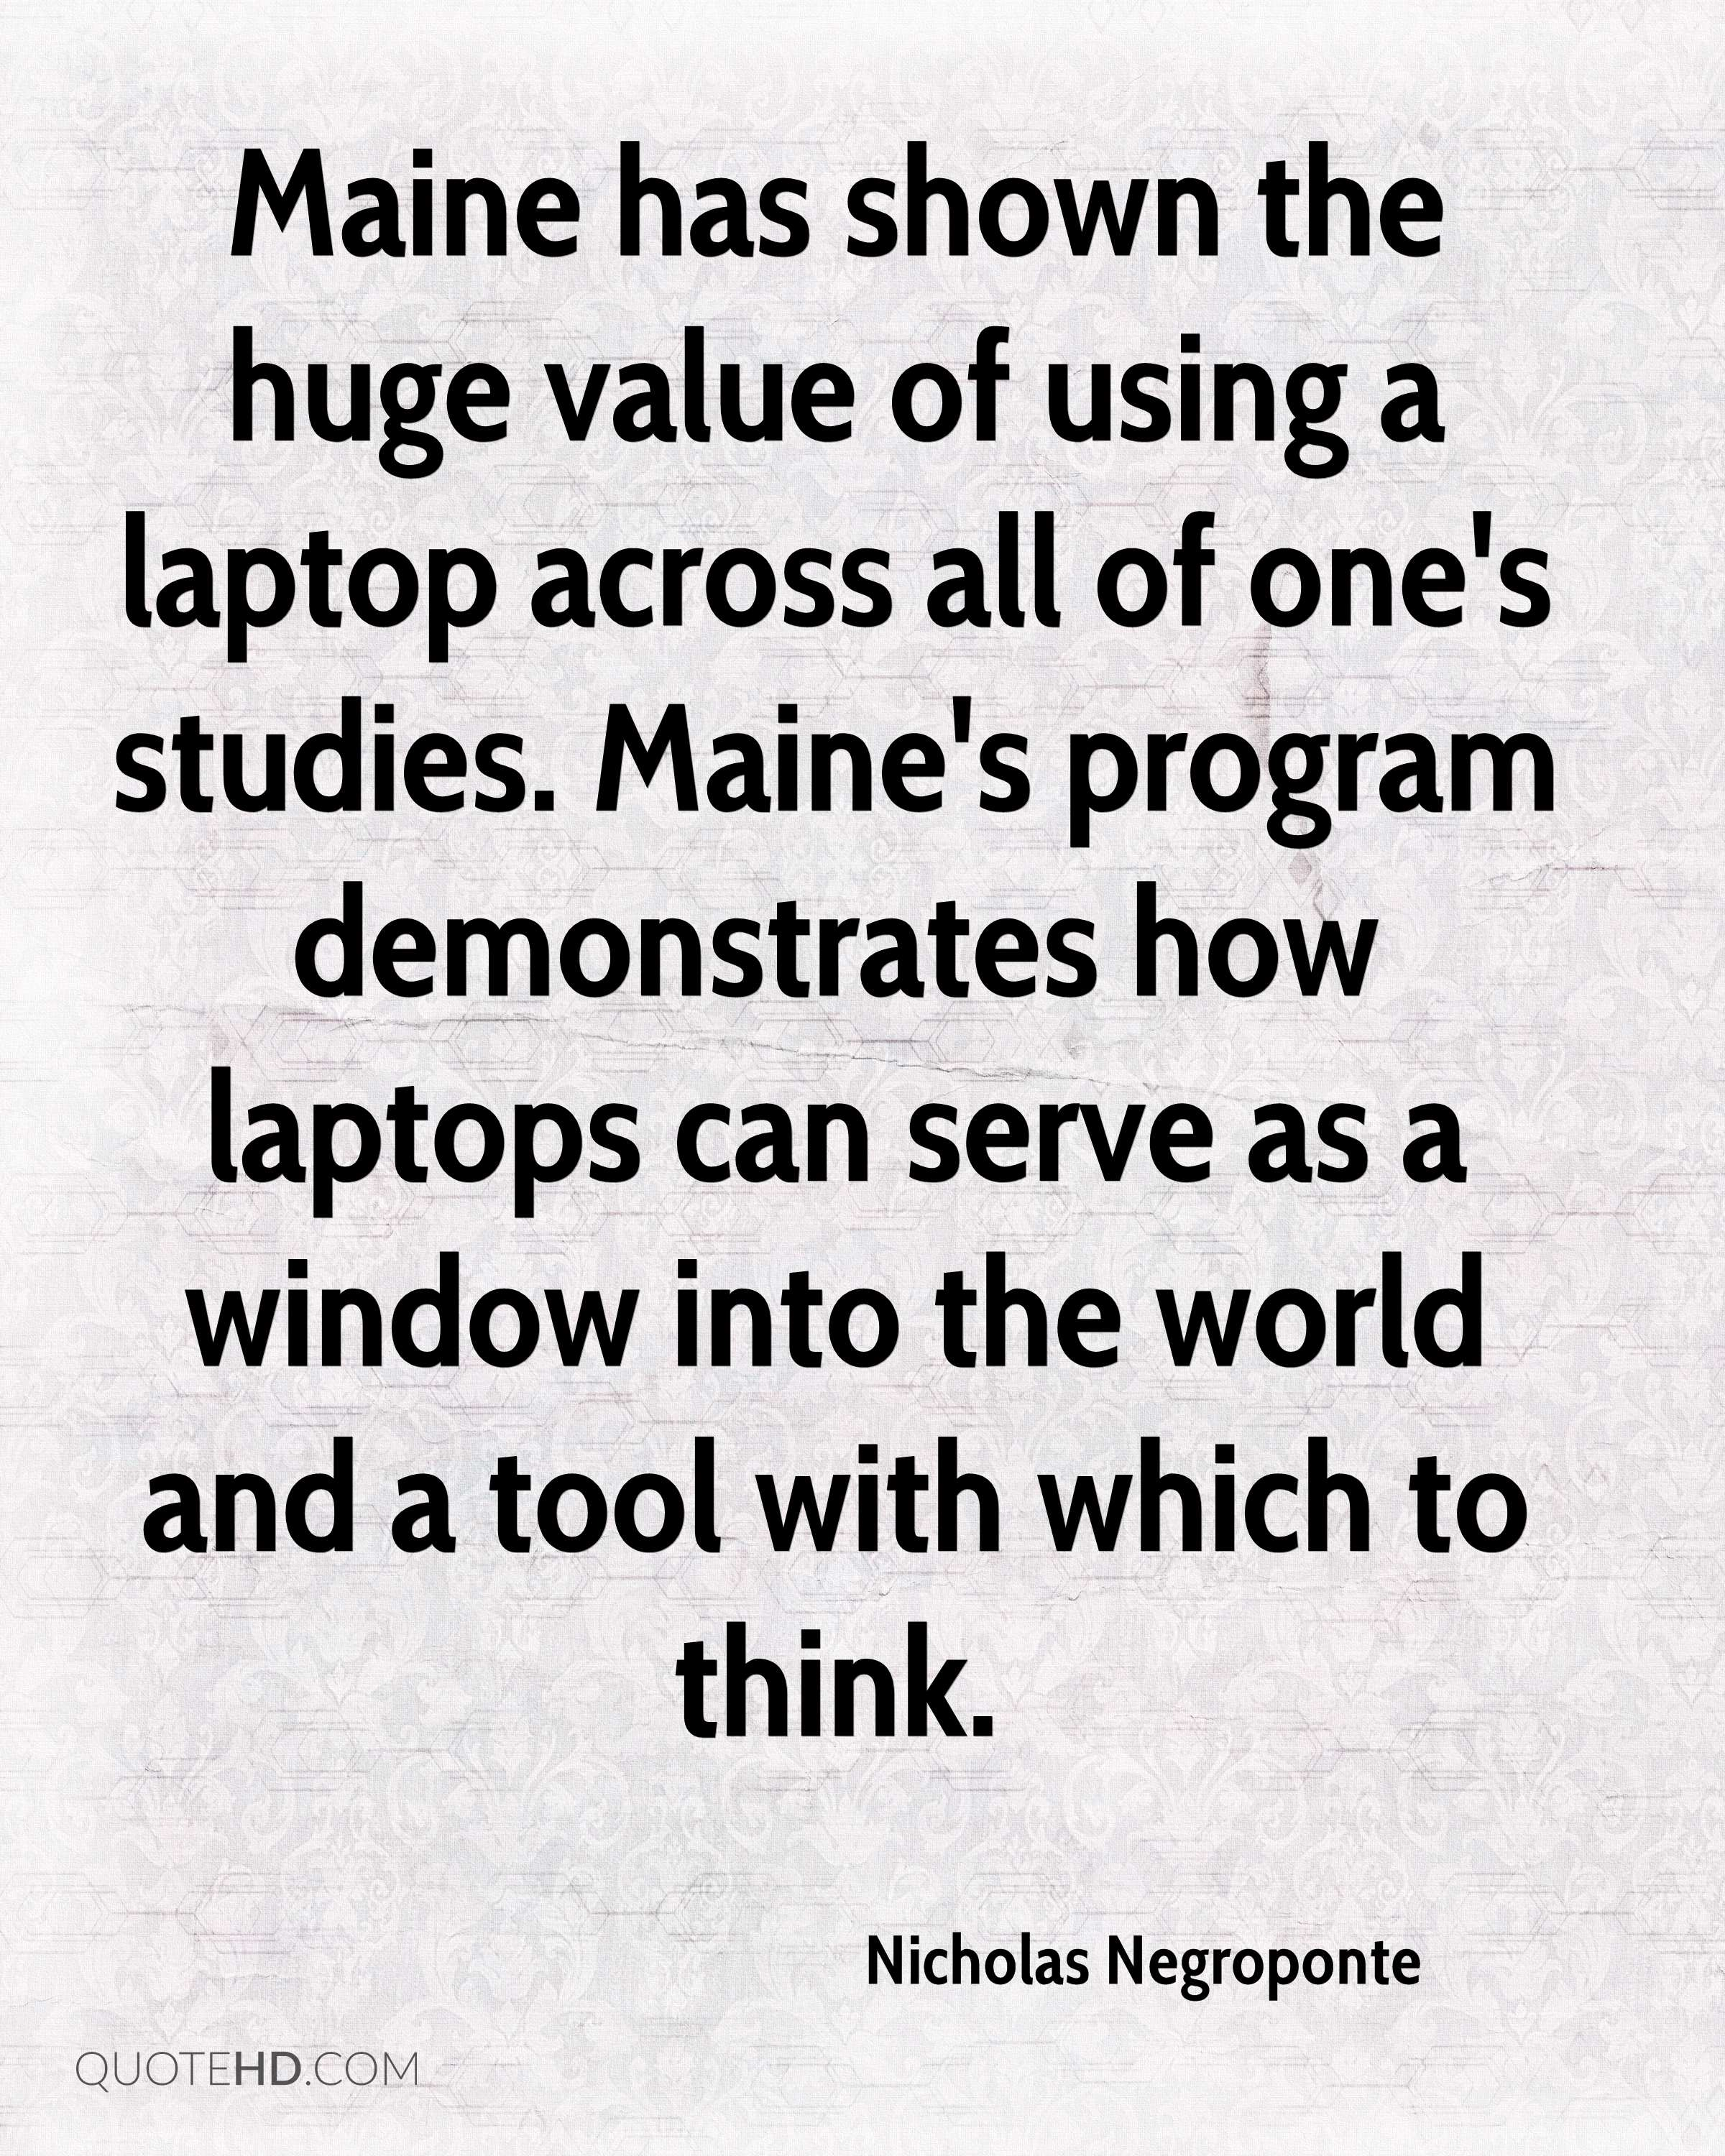 Maine has shown the huge value of using a laptop across all of one's studies. Maine's program demonstrates how laptops can serve as a window into the world and a tool with which to think.